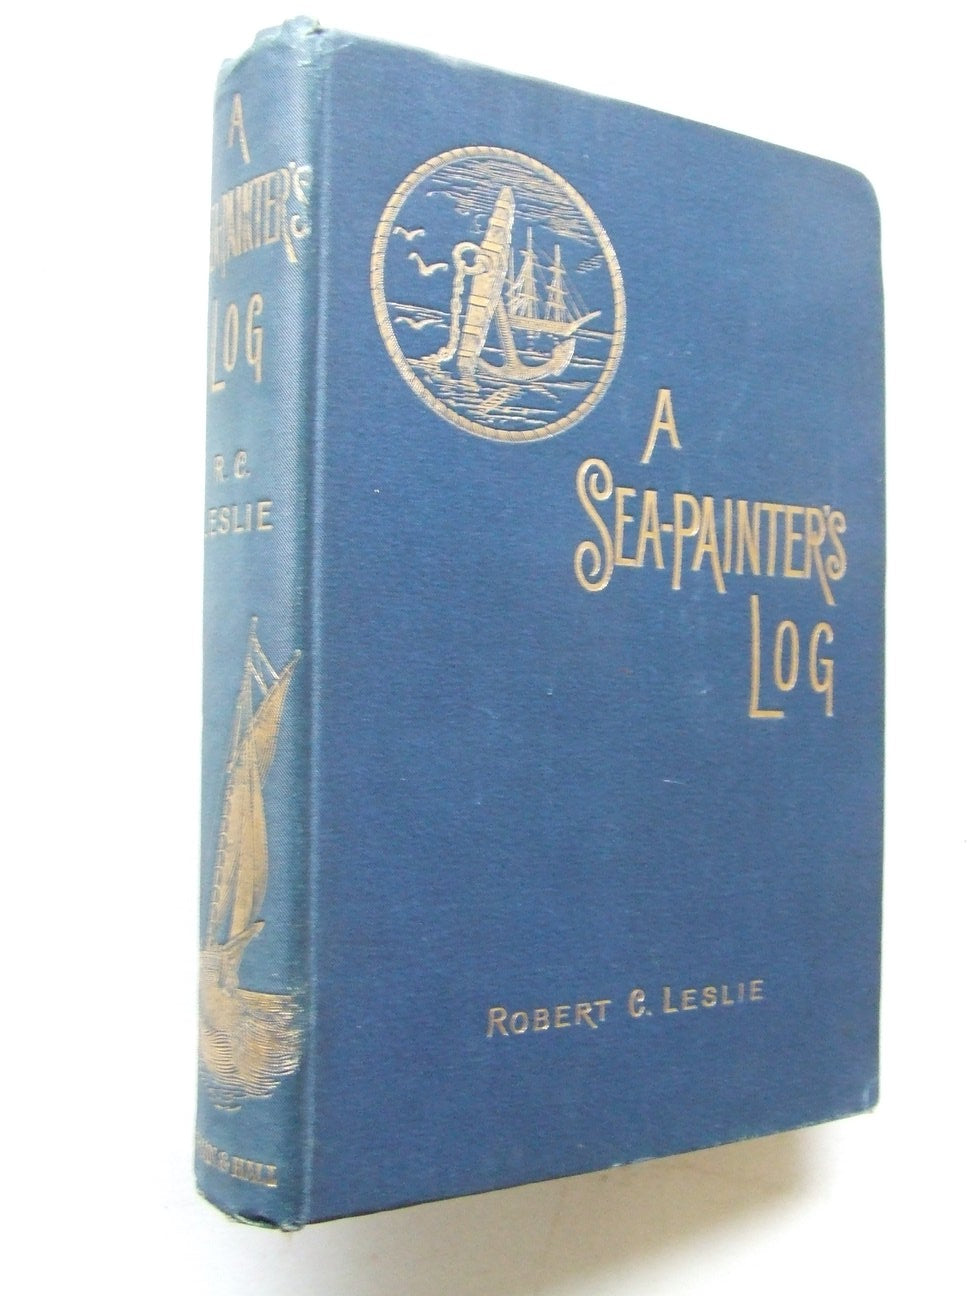 A Sea-Painter's Log